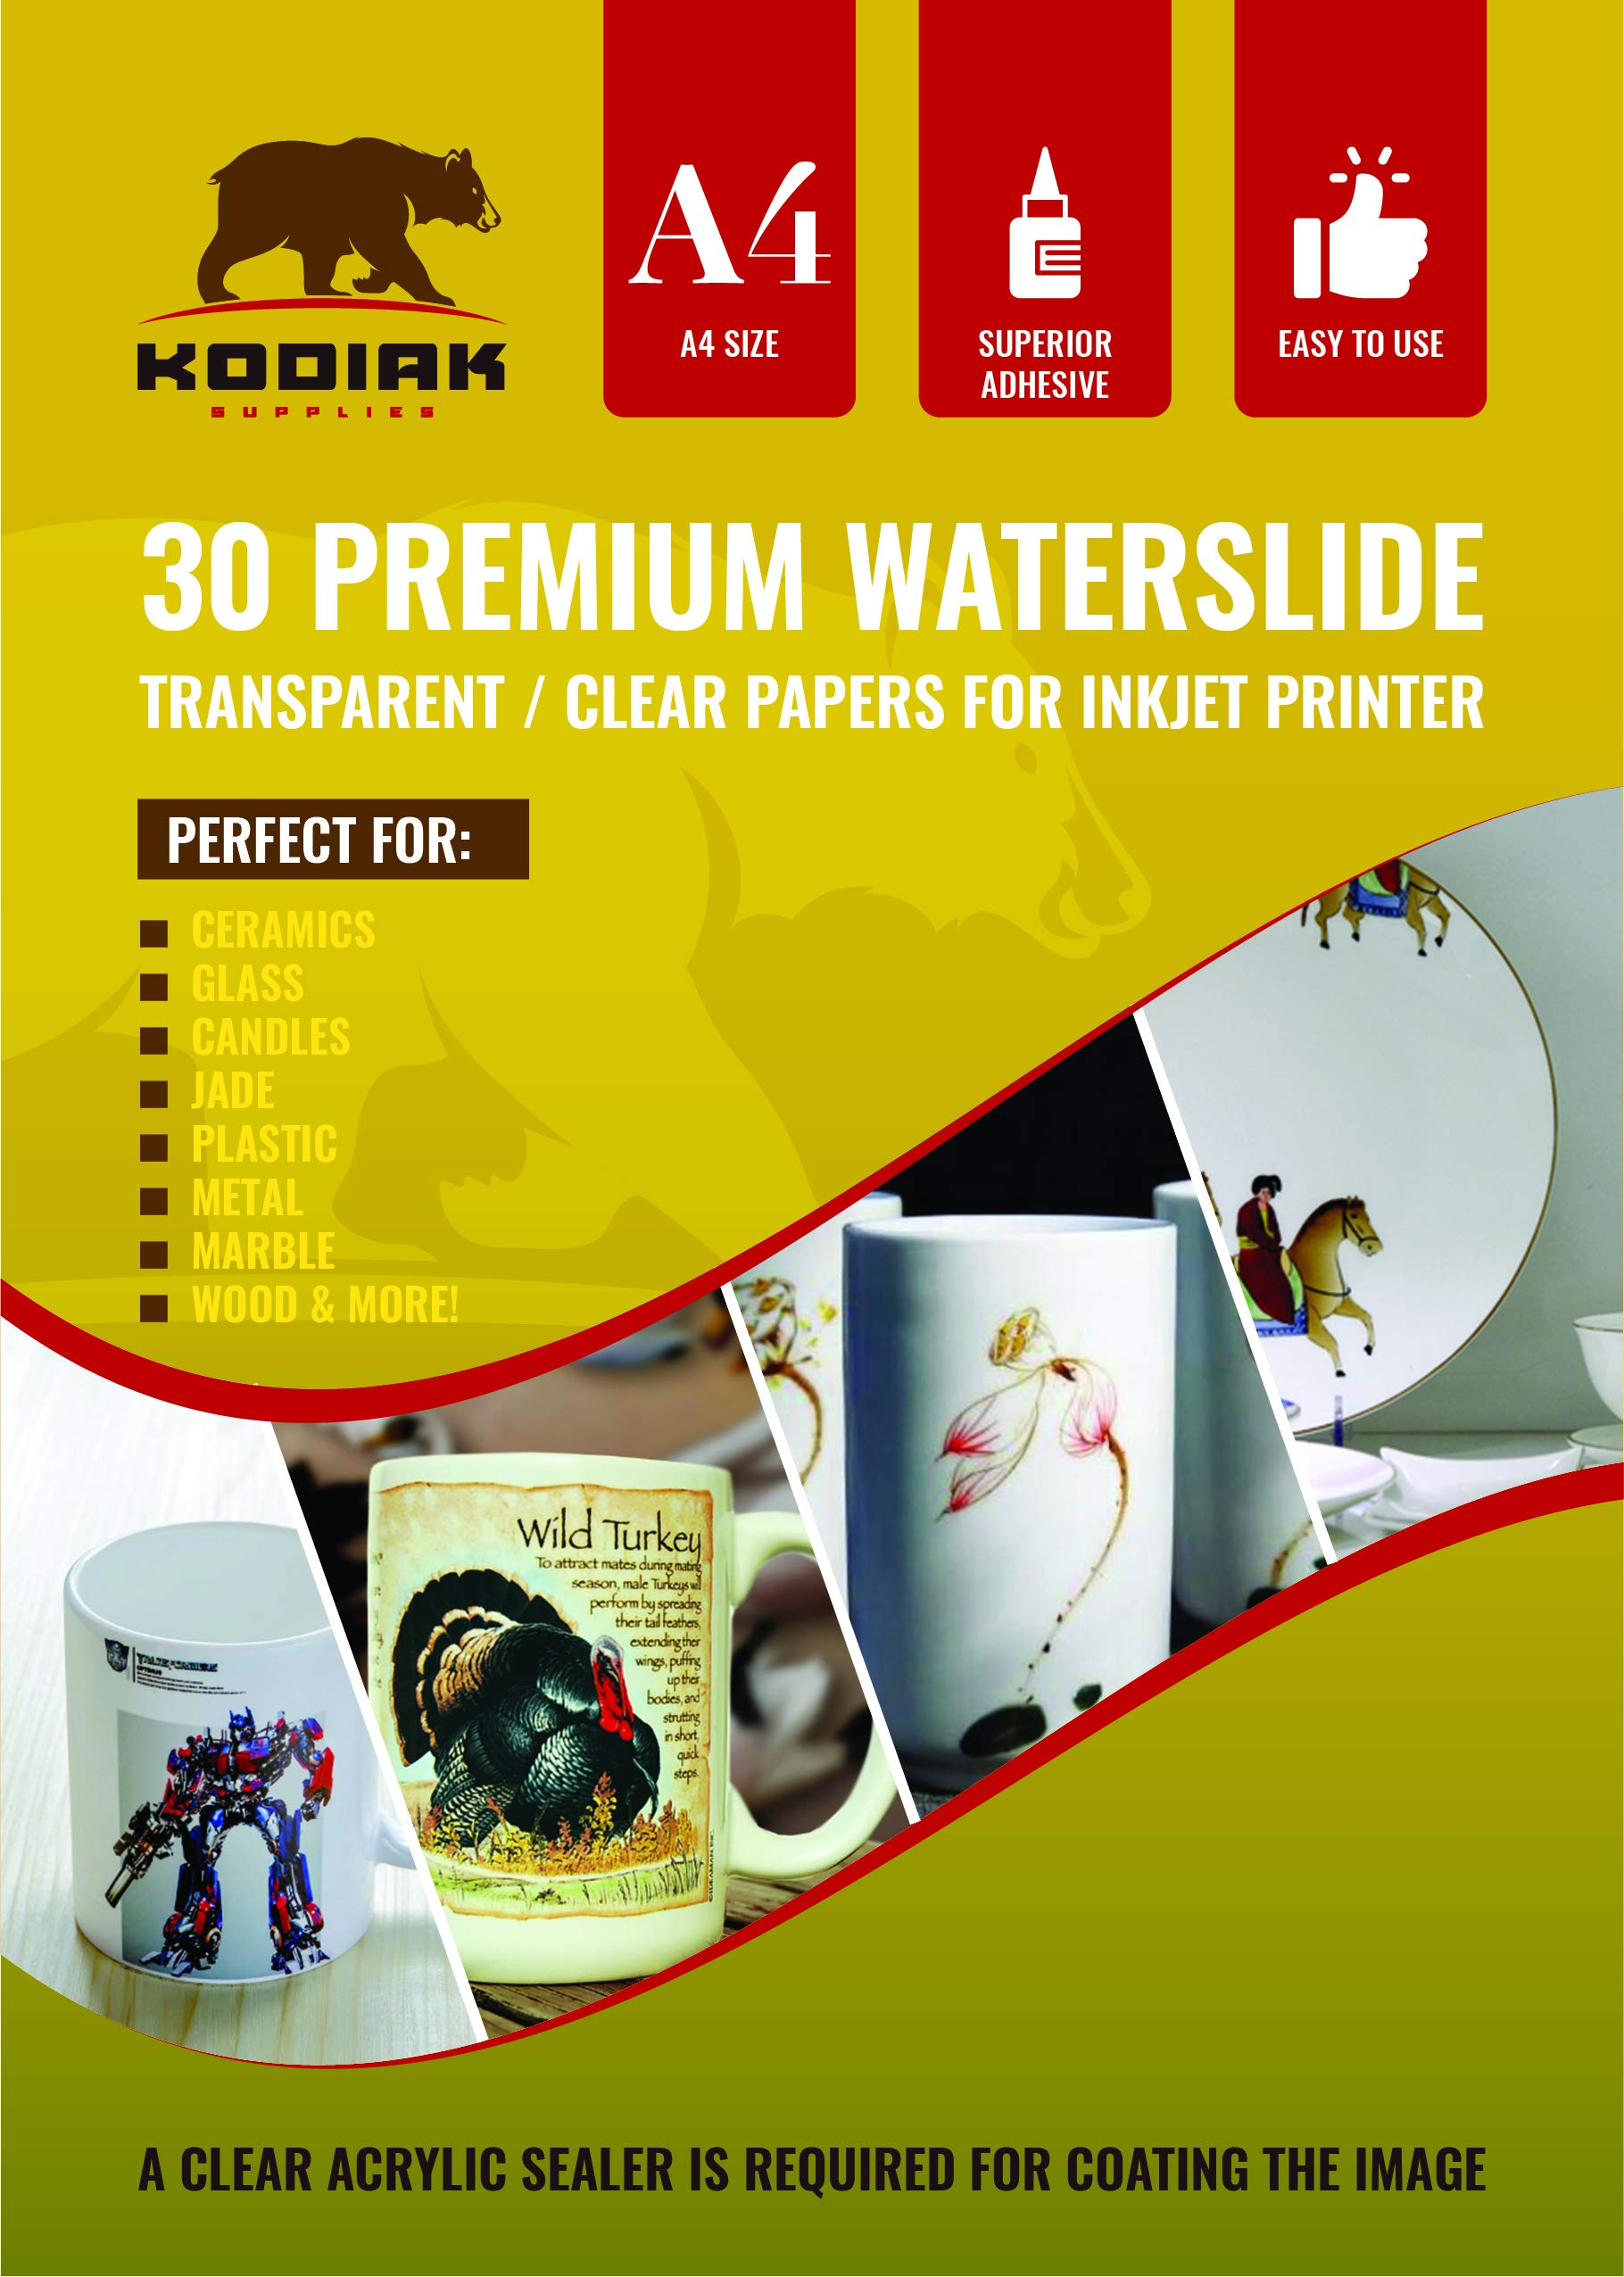 Kodiak Supplies A4 Waterslide Decal Paper INKJET Clear - 30 Sheets - DIY A4 water slide Transfer CLEAR Printable Water Slide Decals A4 30 Sheets